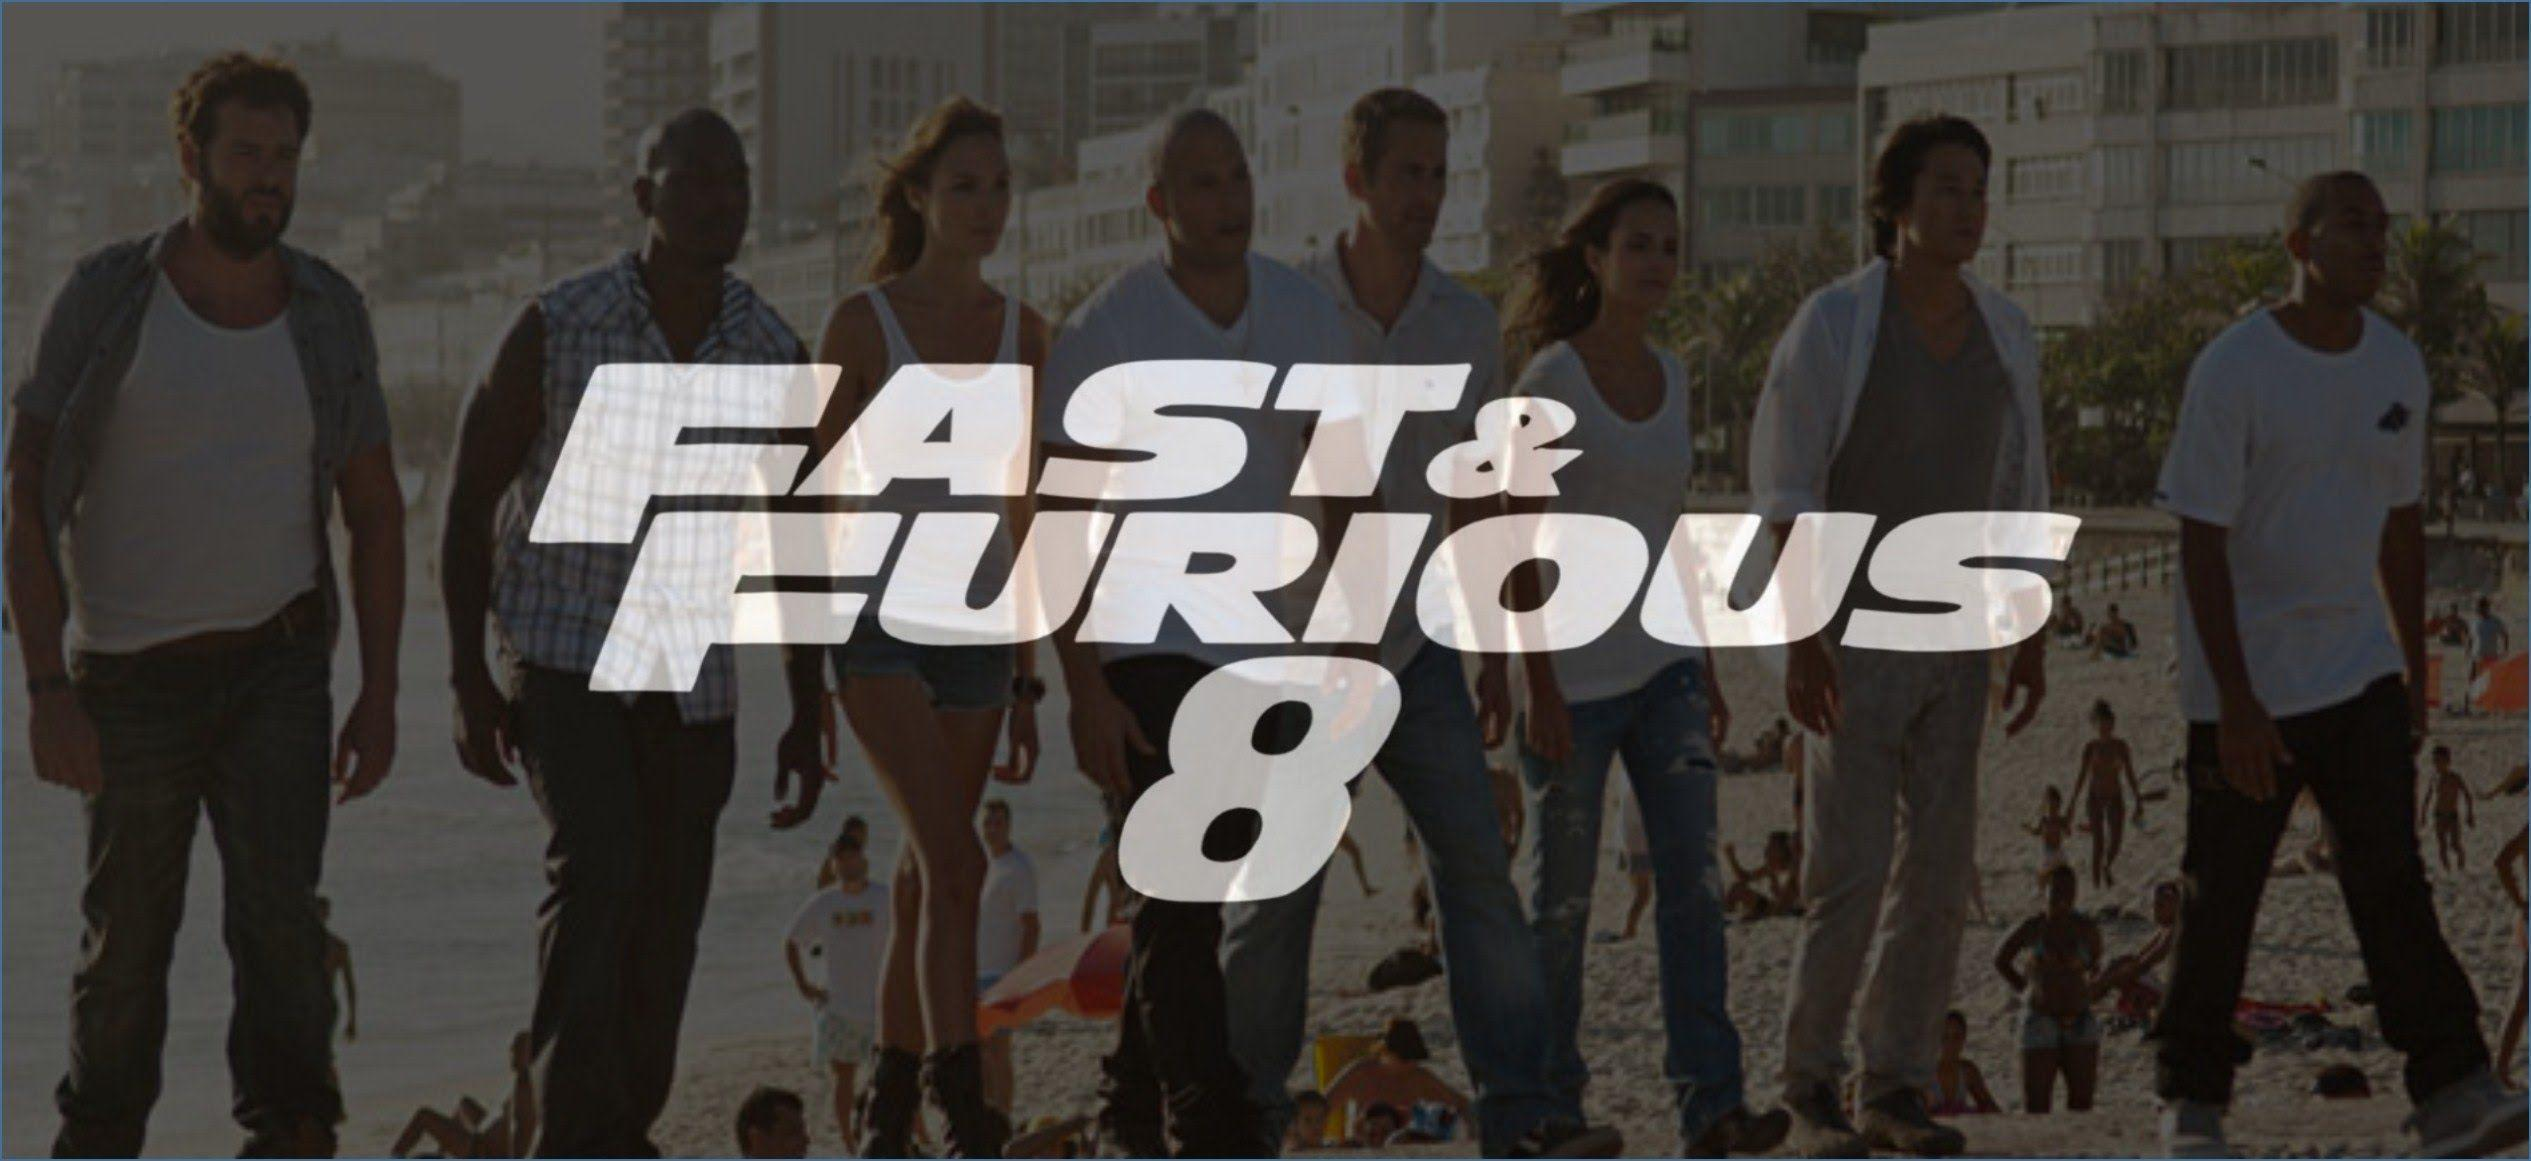 Fast and Furious 8 HD wallpapers free download